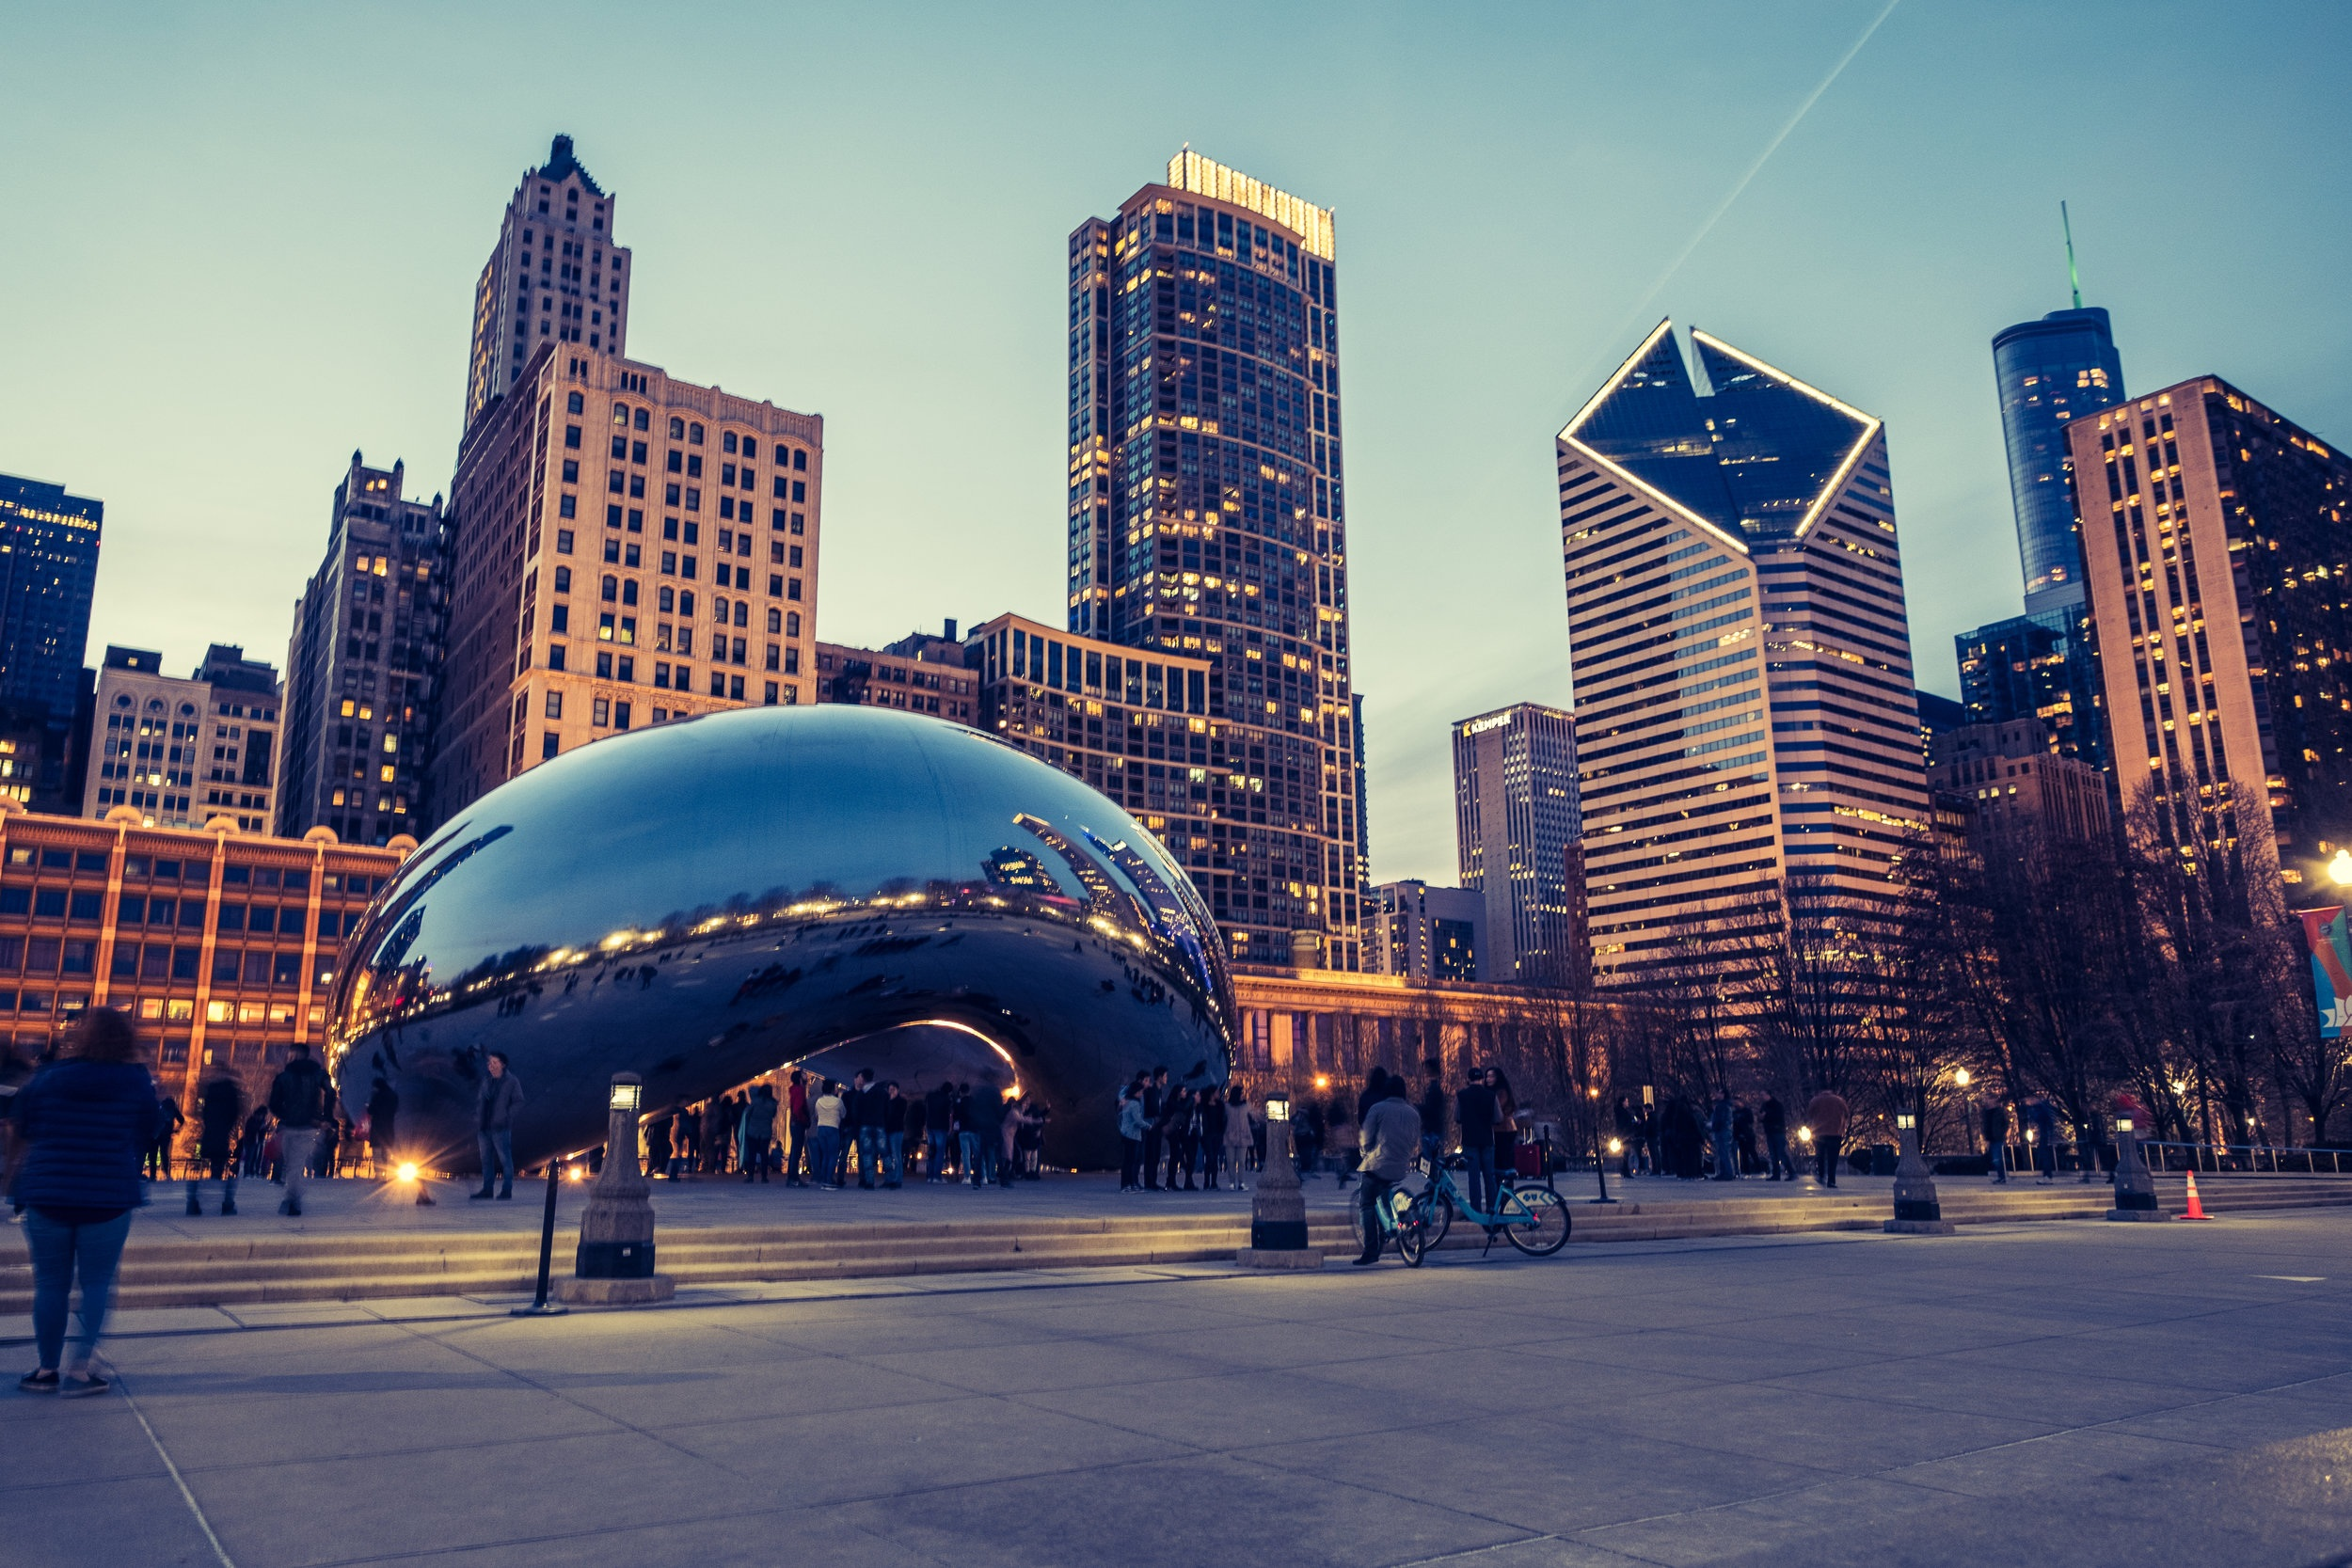 Chicago - The most popular destination for working millennials for nearly a decade. Get an insider's insight on where the hottest neighborhoods are.